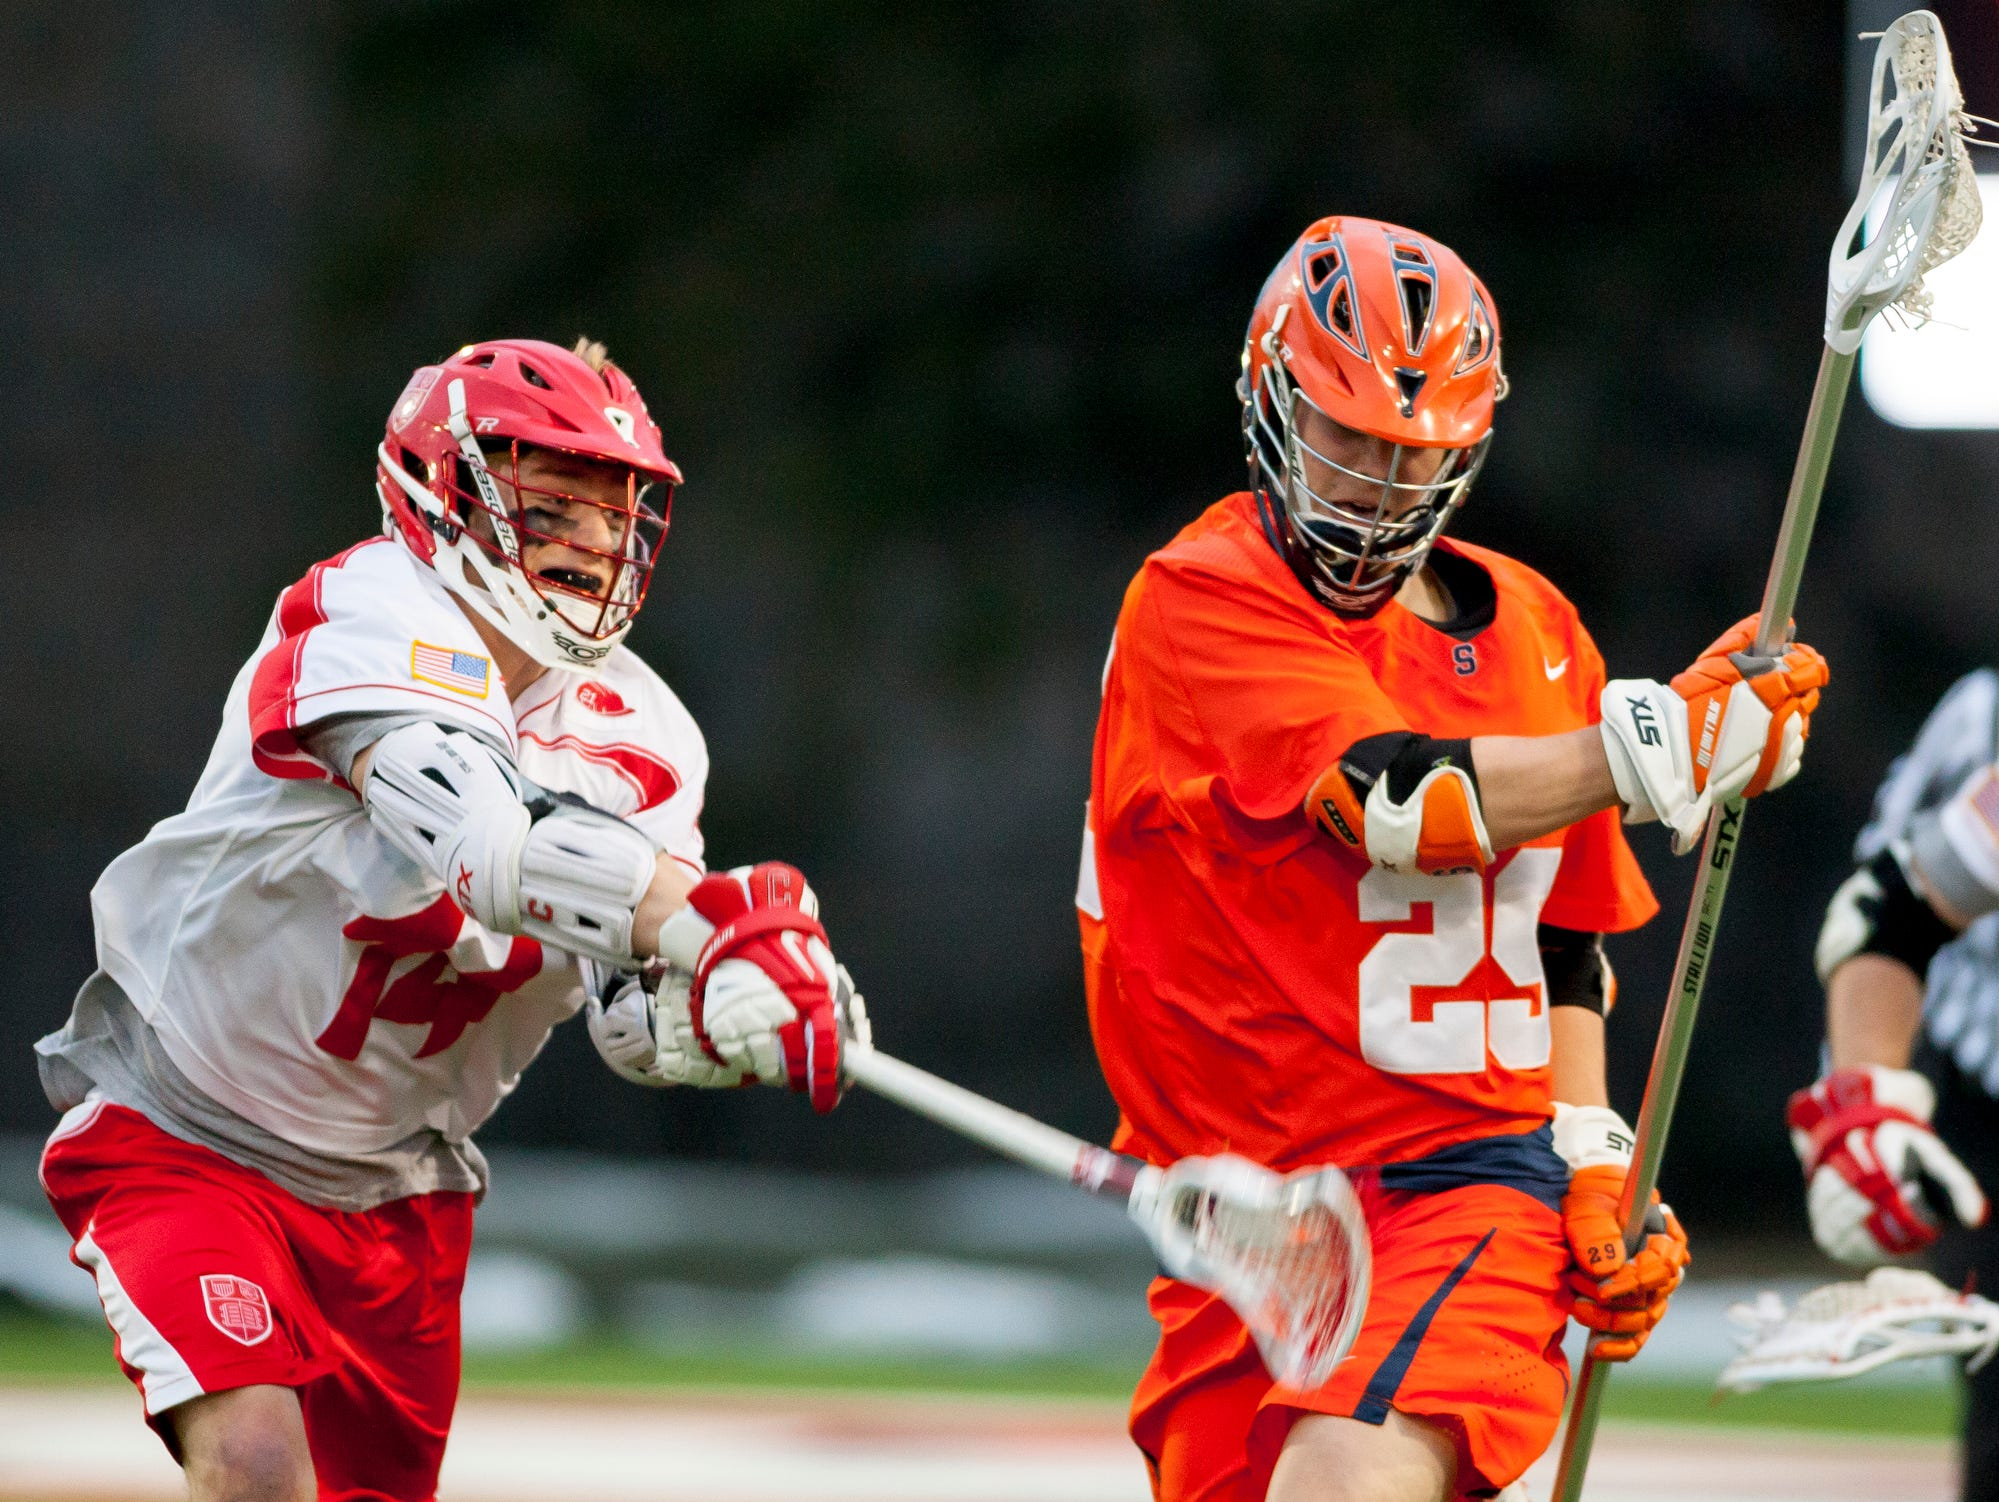 2014: Cornell's Dan Lintner left, tries to knock the ball away from Syracuse's Scott Firman during the first half of their game Tuesday evening at Schoellkopf Field in Ithaca.